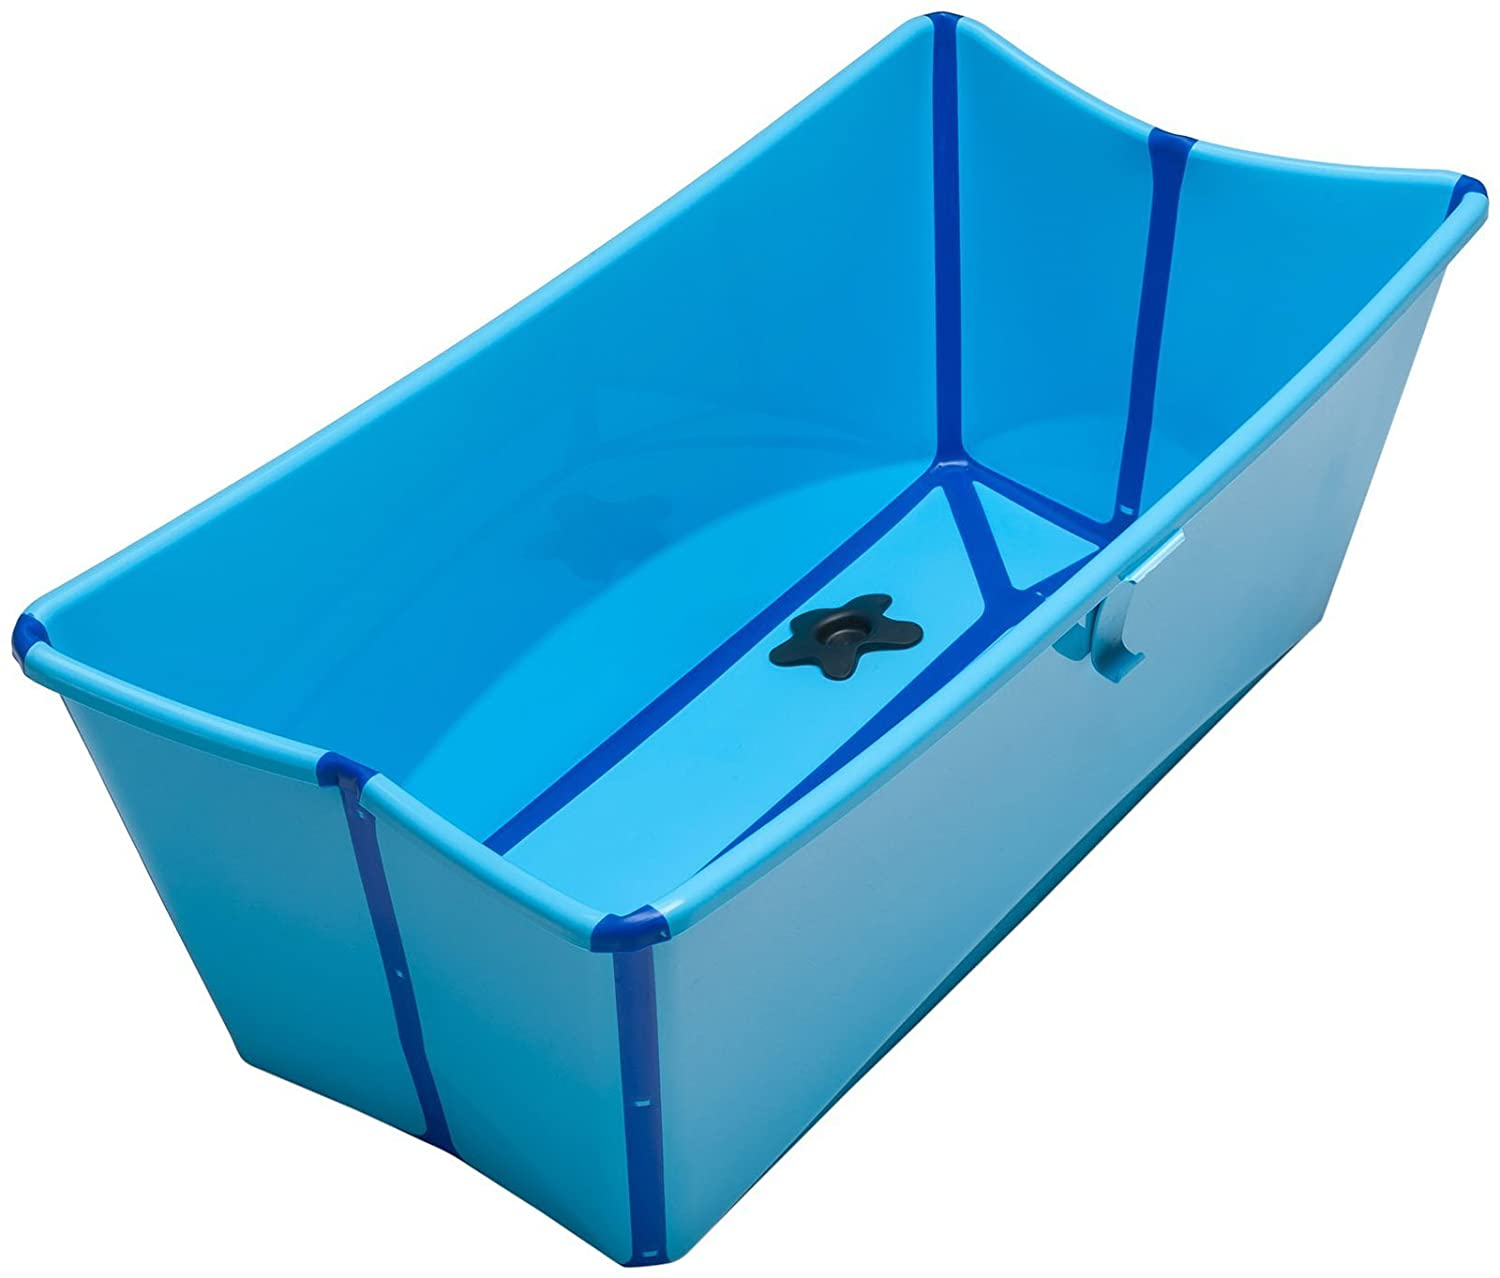 Amazon.com : Stokke Flexi Bath, Blue : Baby